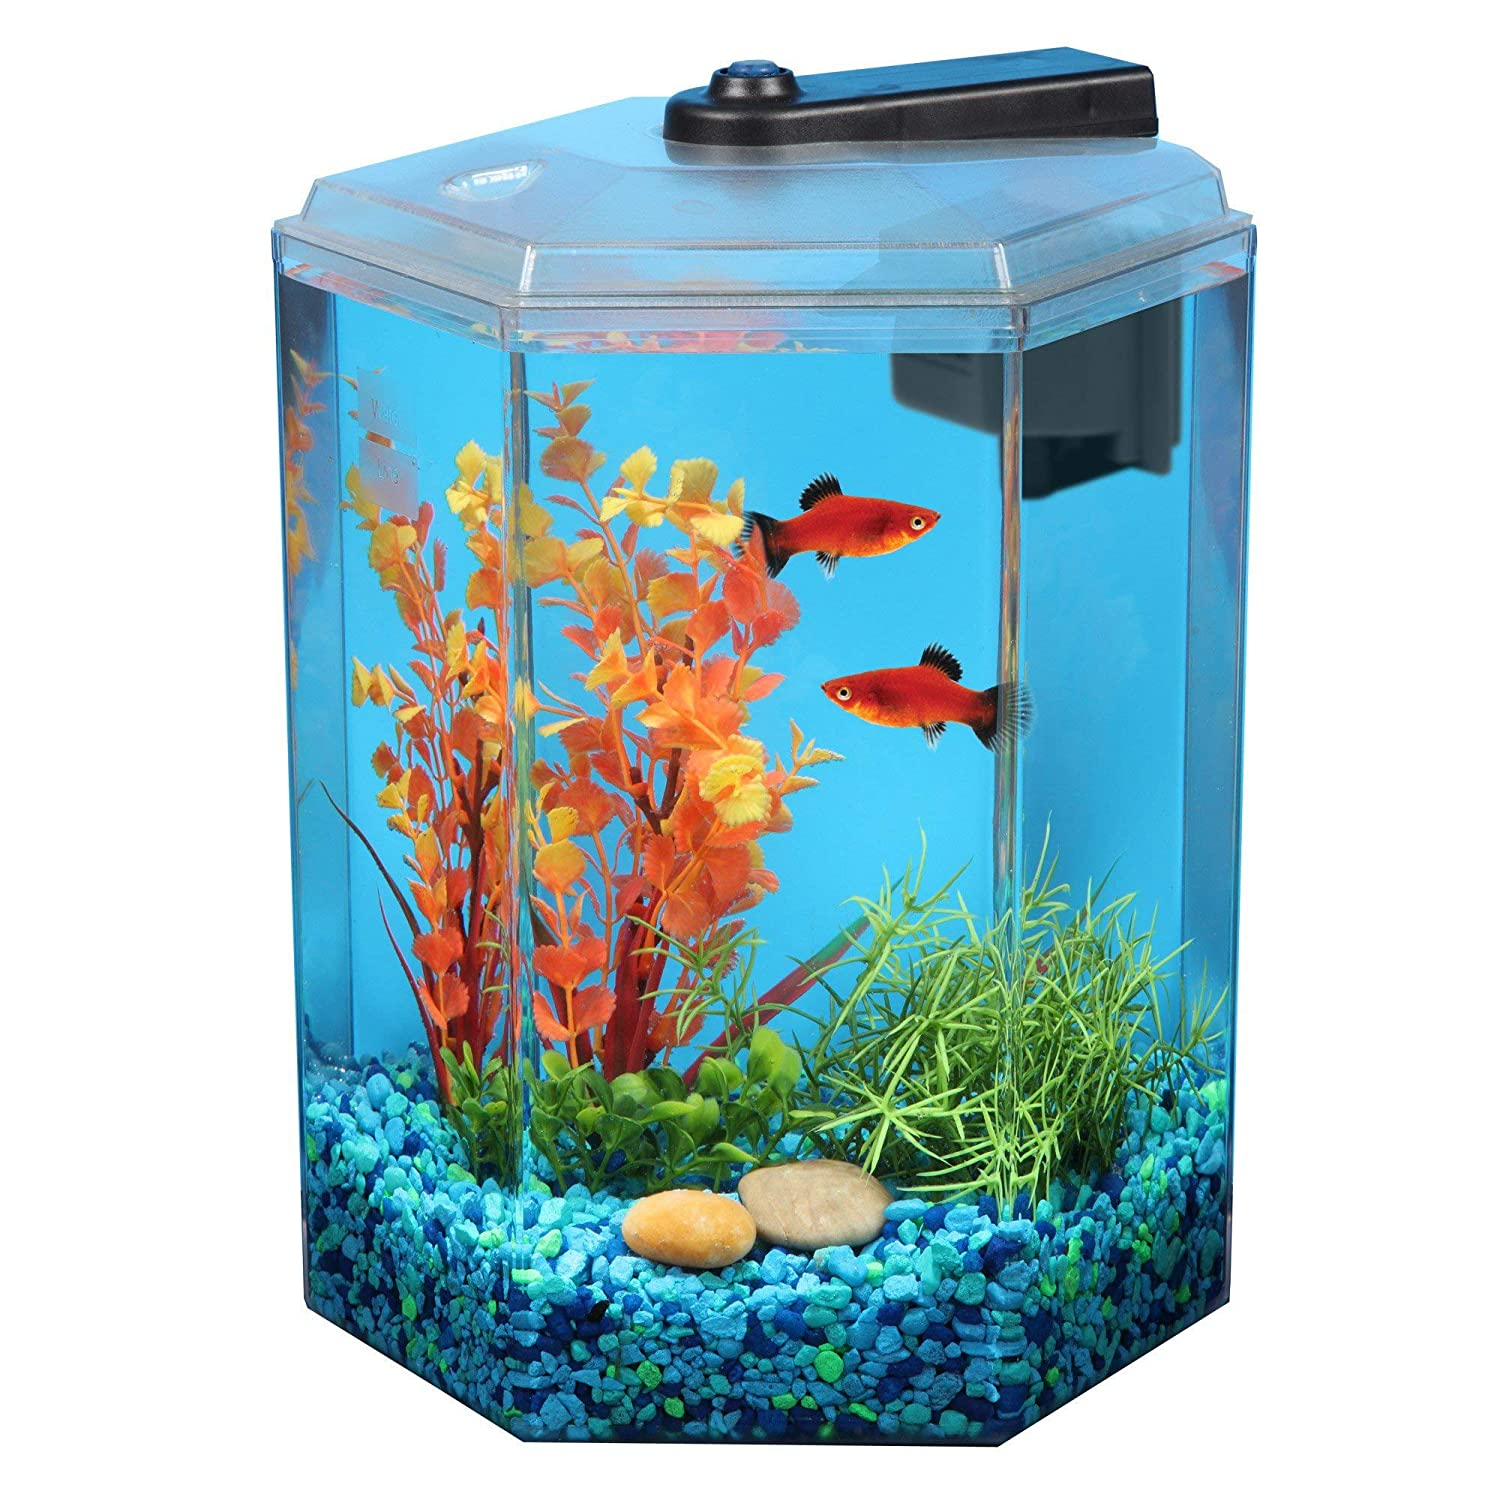 Top 25 Fish Tank Coffee Tables For Sale 2020